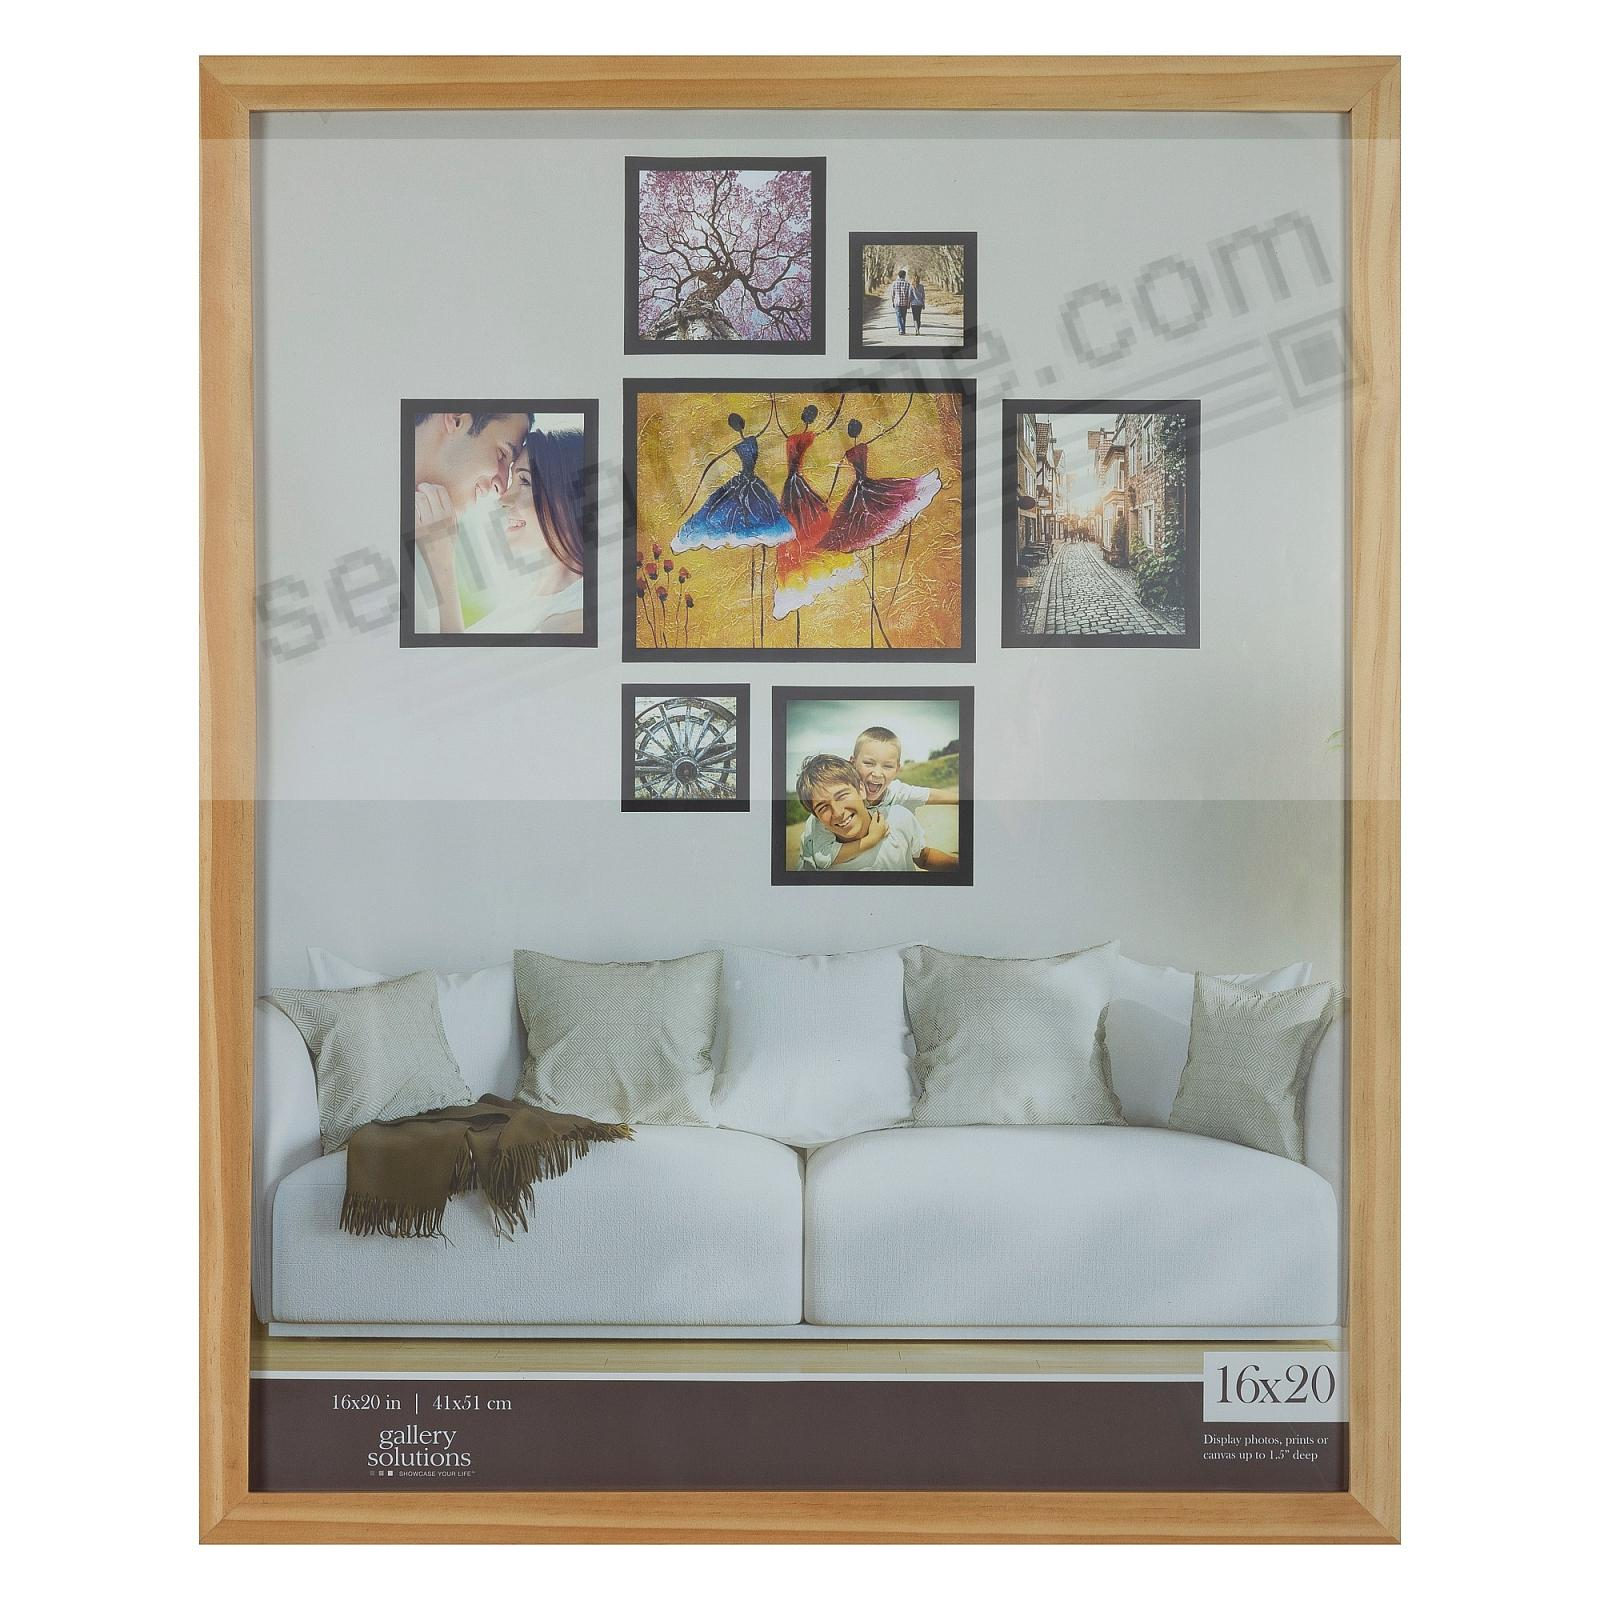 NATURAL GALLERY 16x20 frame by Gallery Solutions®